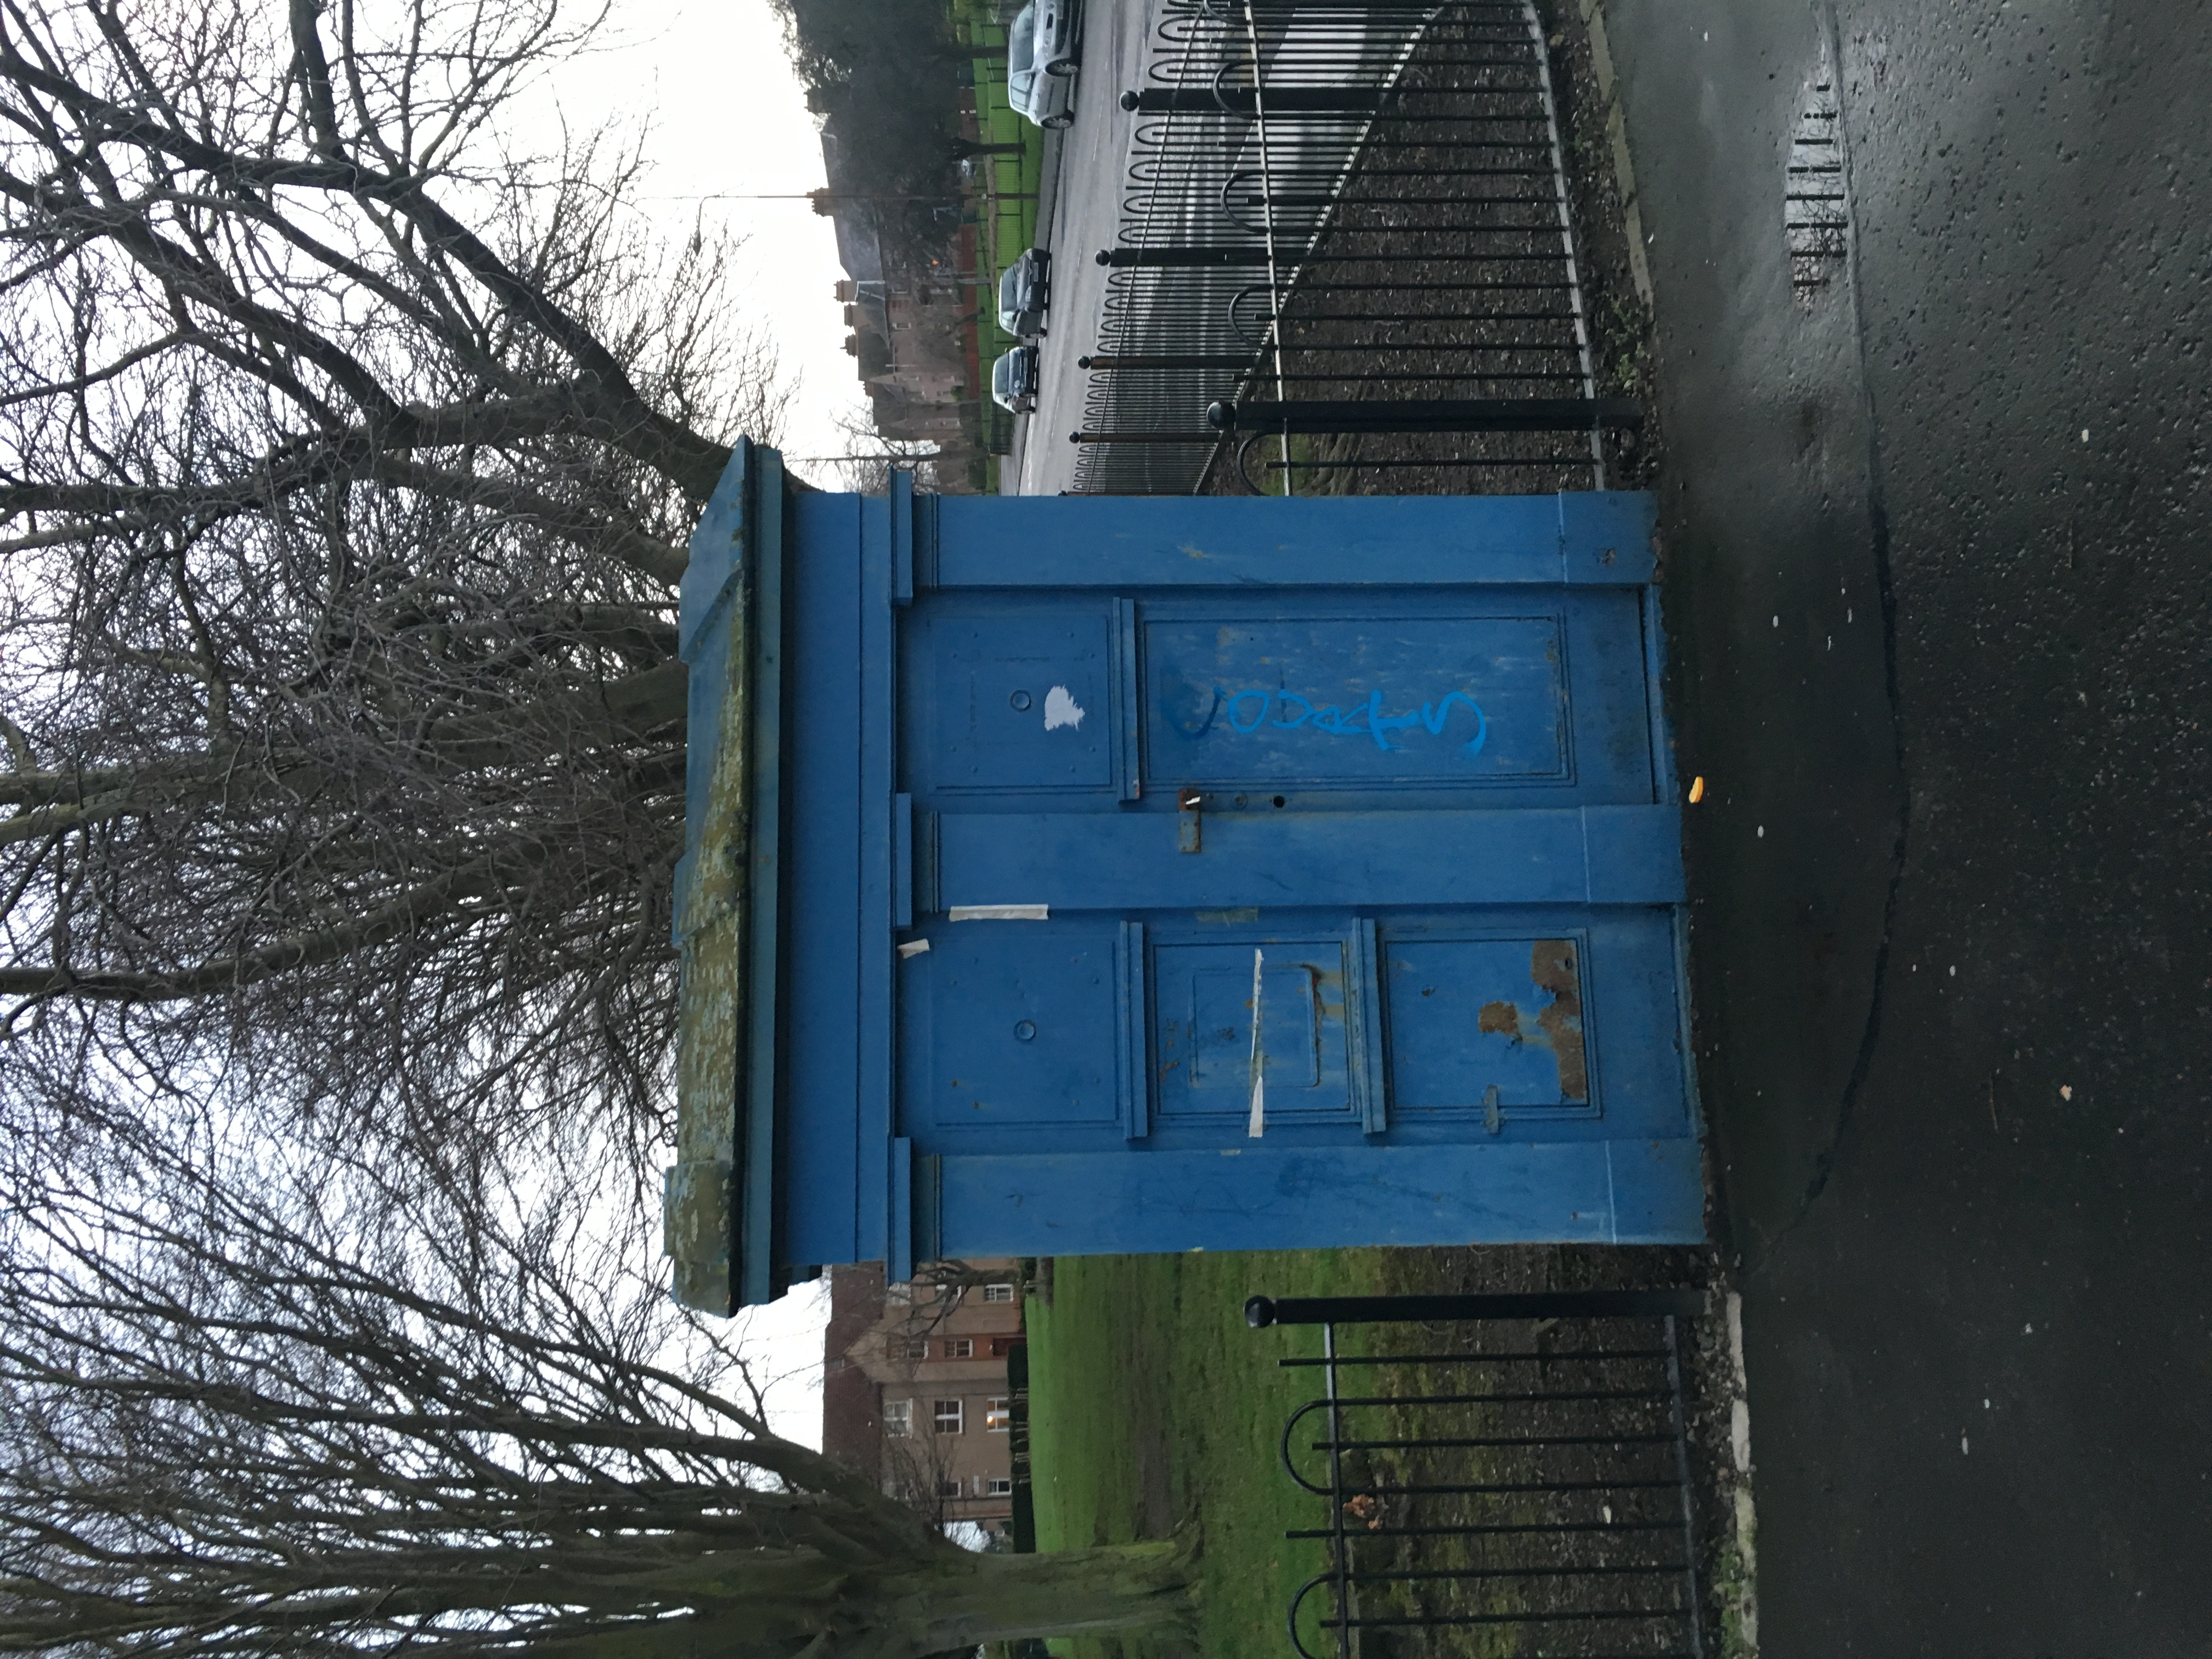 The front of the police box